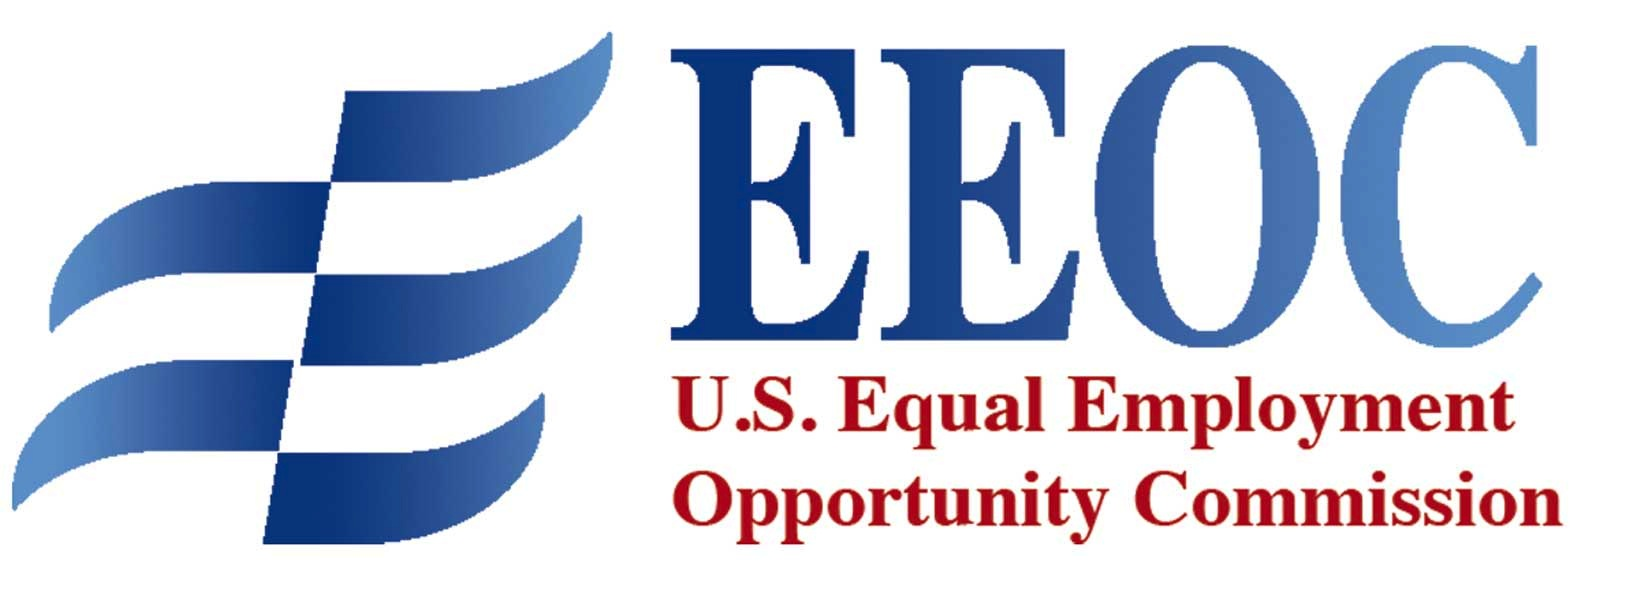 Employer Transgender Equal Opportunity Policy Letter